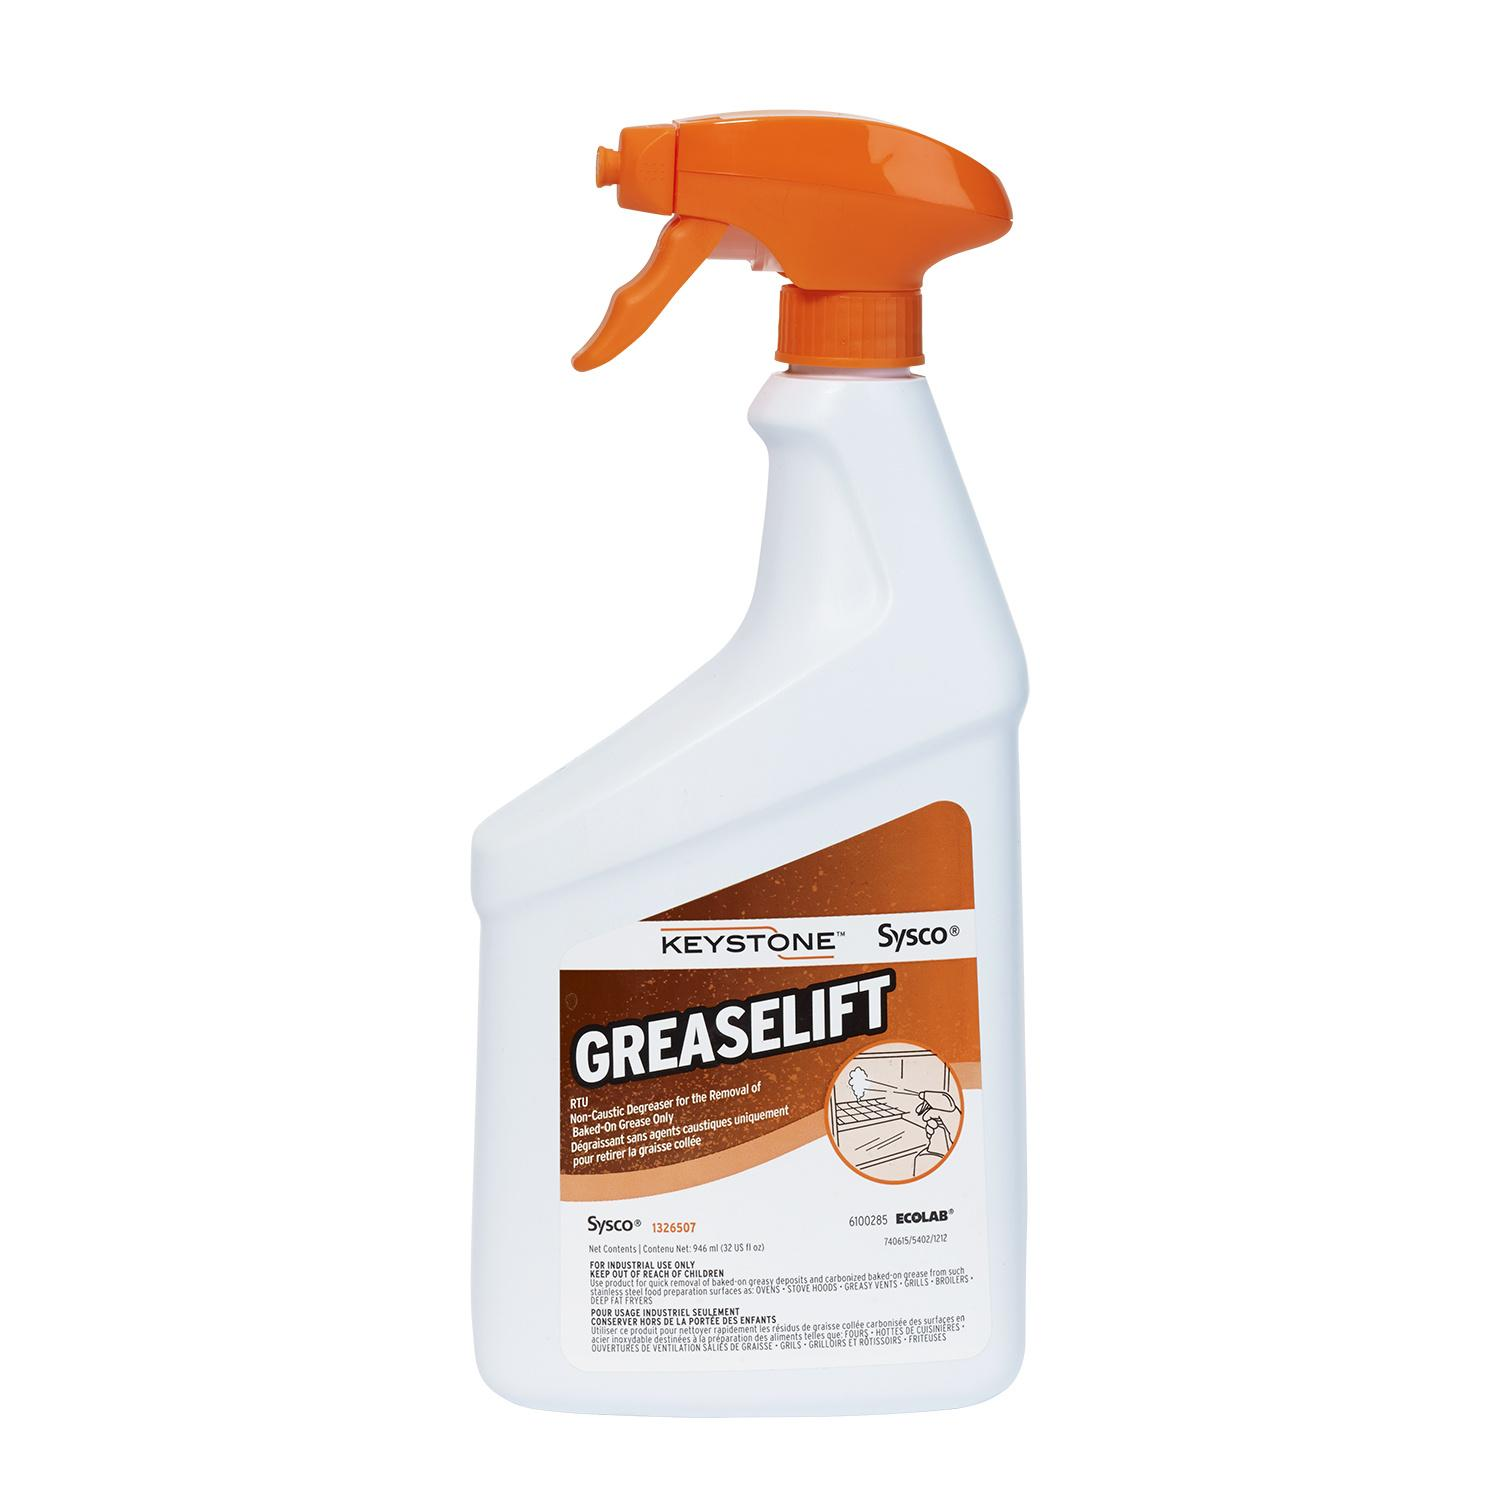 image of Cleaner Degreaser Greaselift Ready-To-Use